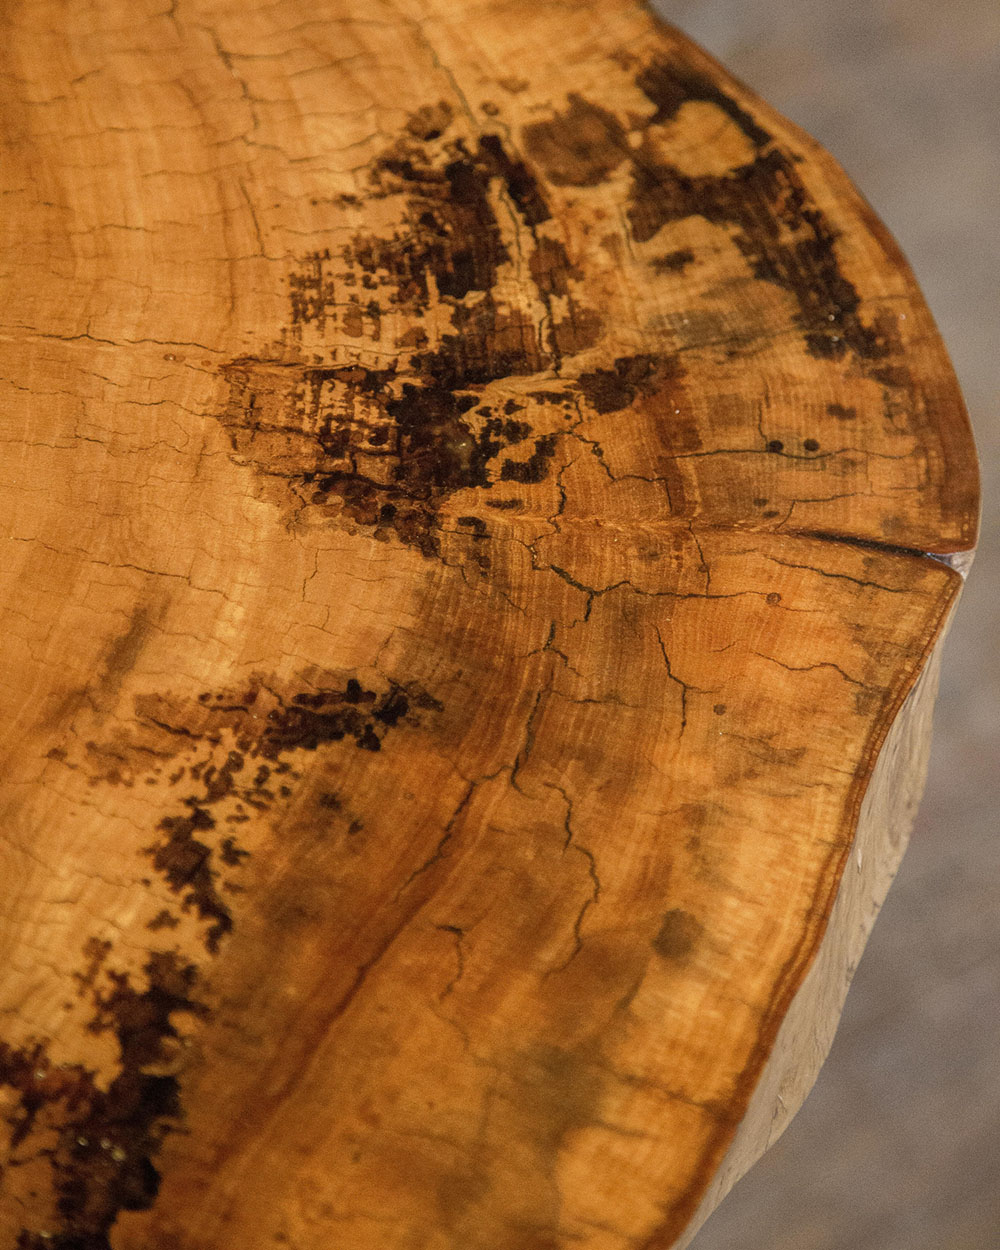 Close-up detail of the natural variation in the elm surface of a made to order table by STACKLAB.